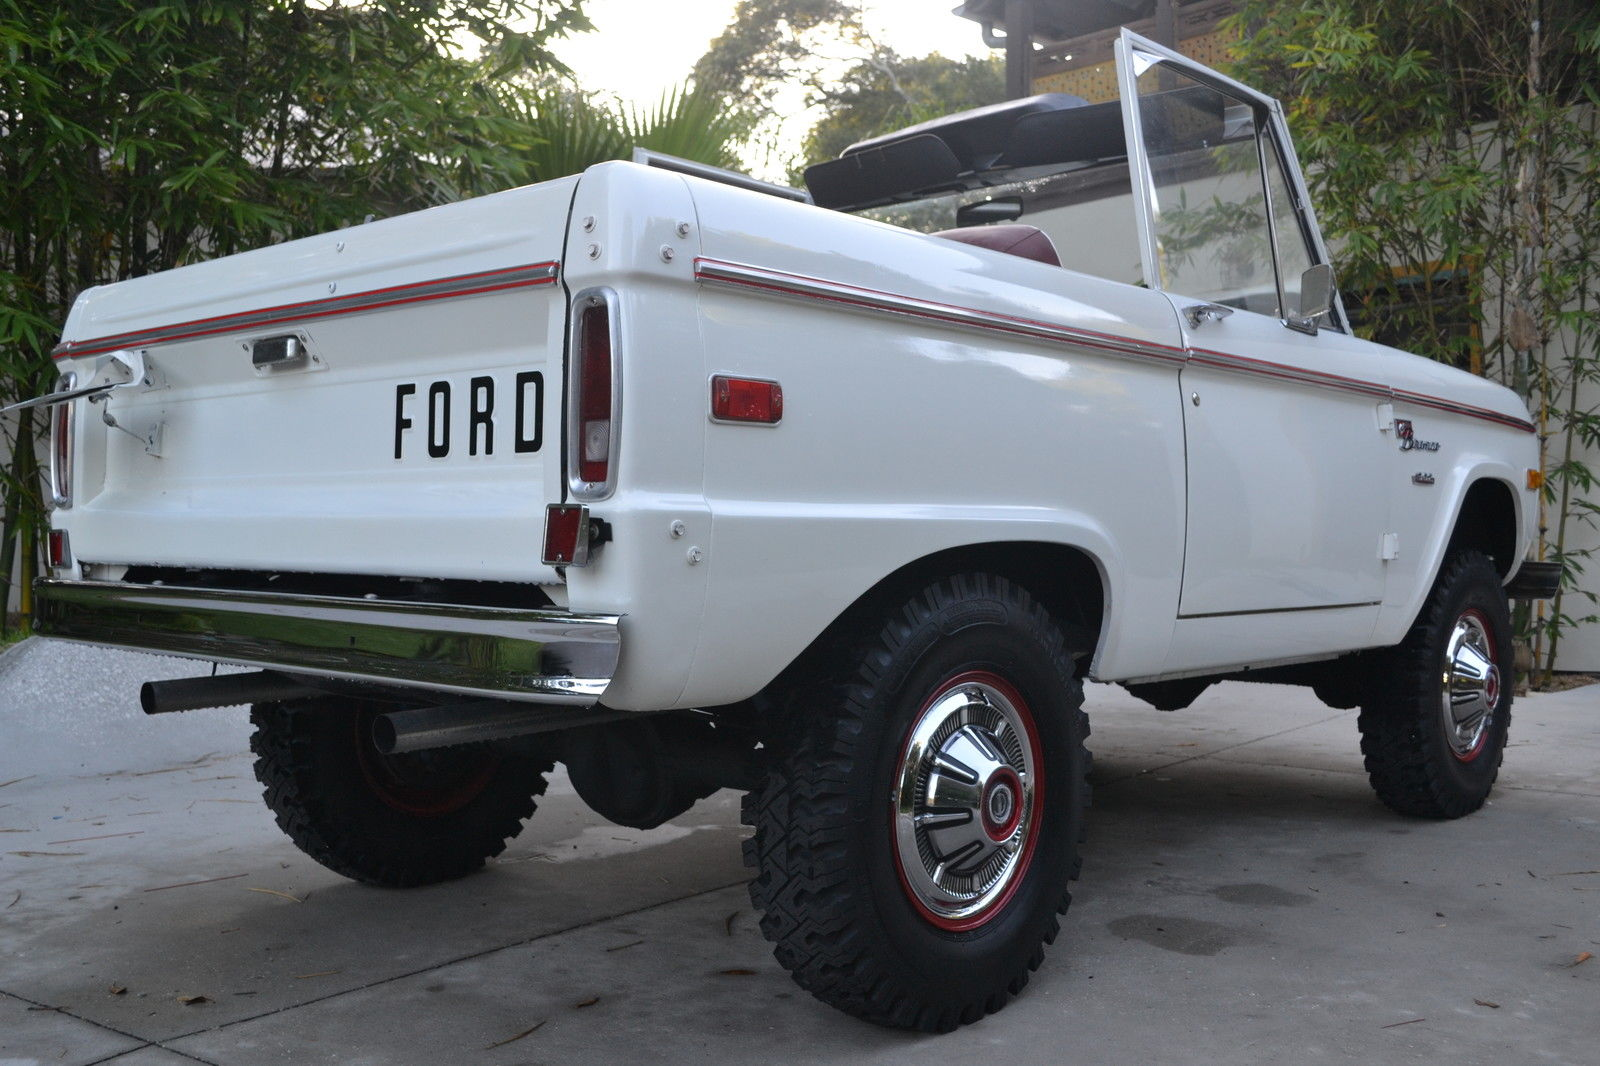 2016 Ford Bronco >> All American Classic Cars: 1975 Ford Bronco Ranger 2-Door Compact SUV